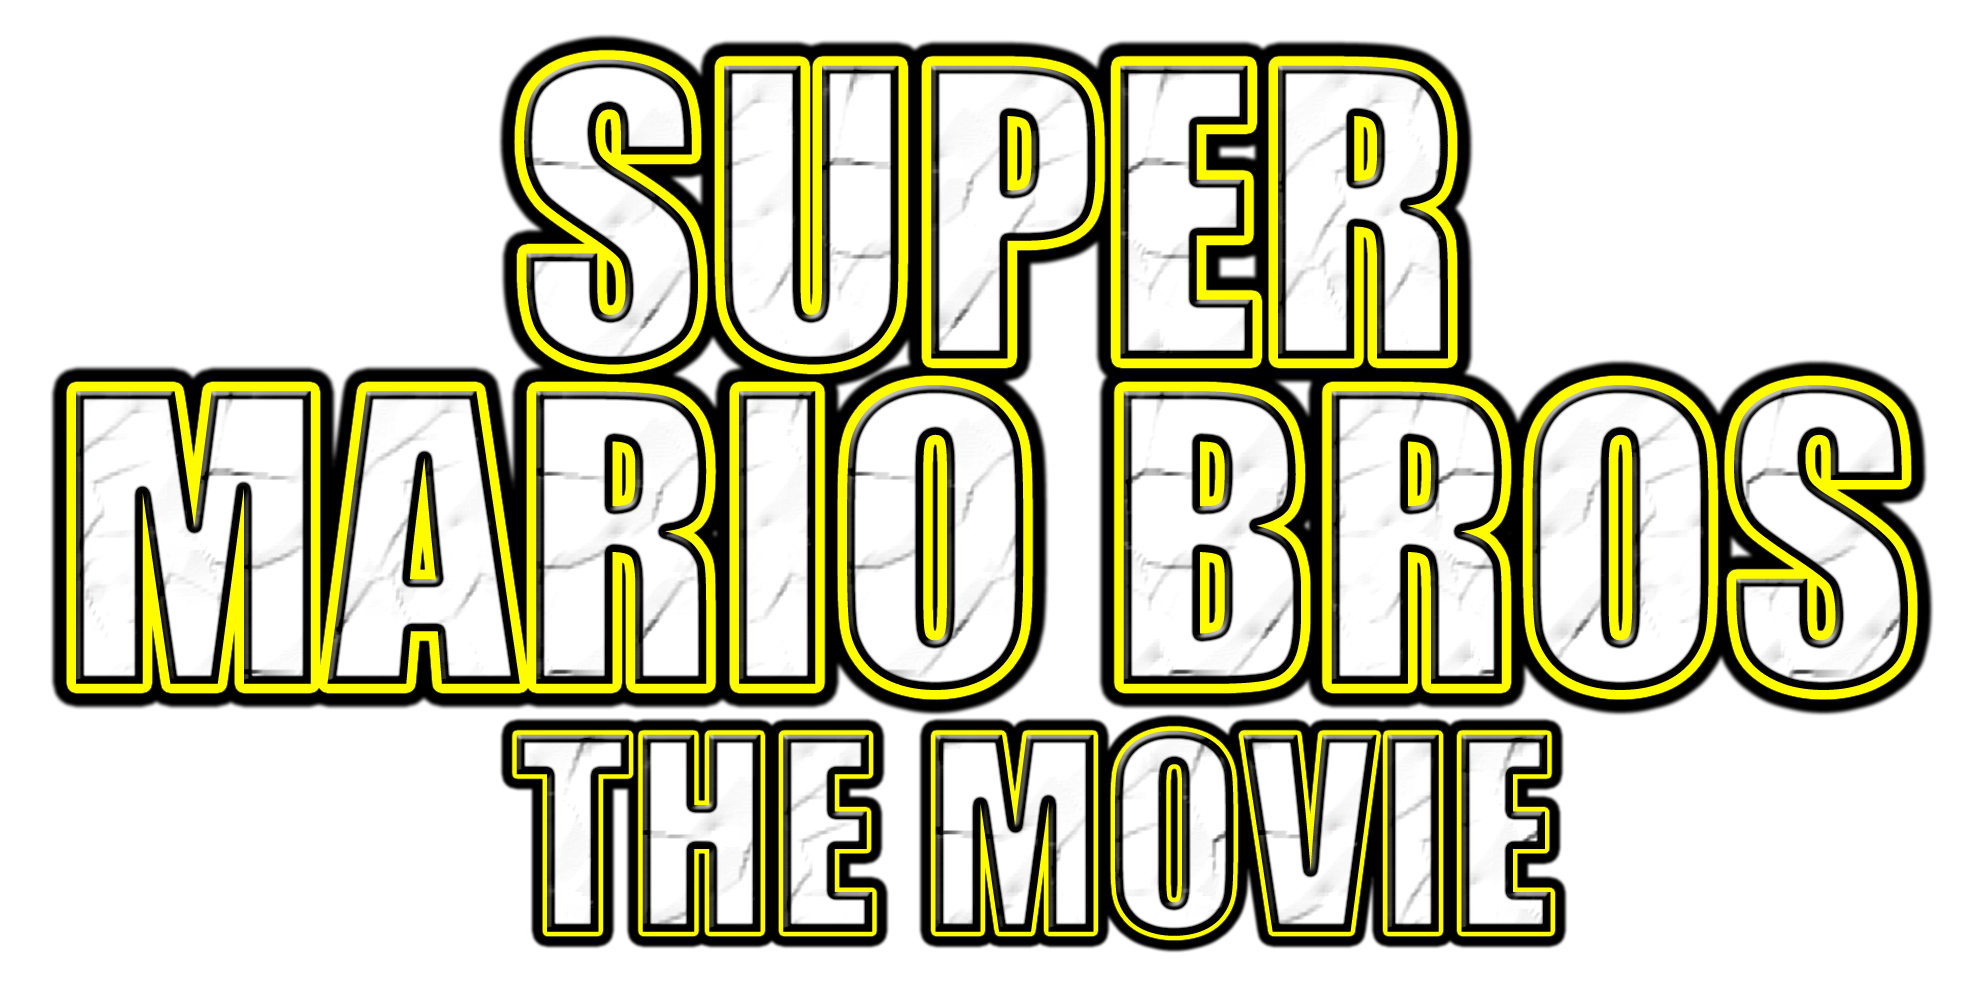 Super Mario Bros The Movie Logo By Asylusgoji91 On Deviantart